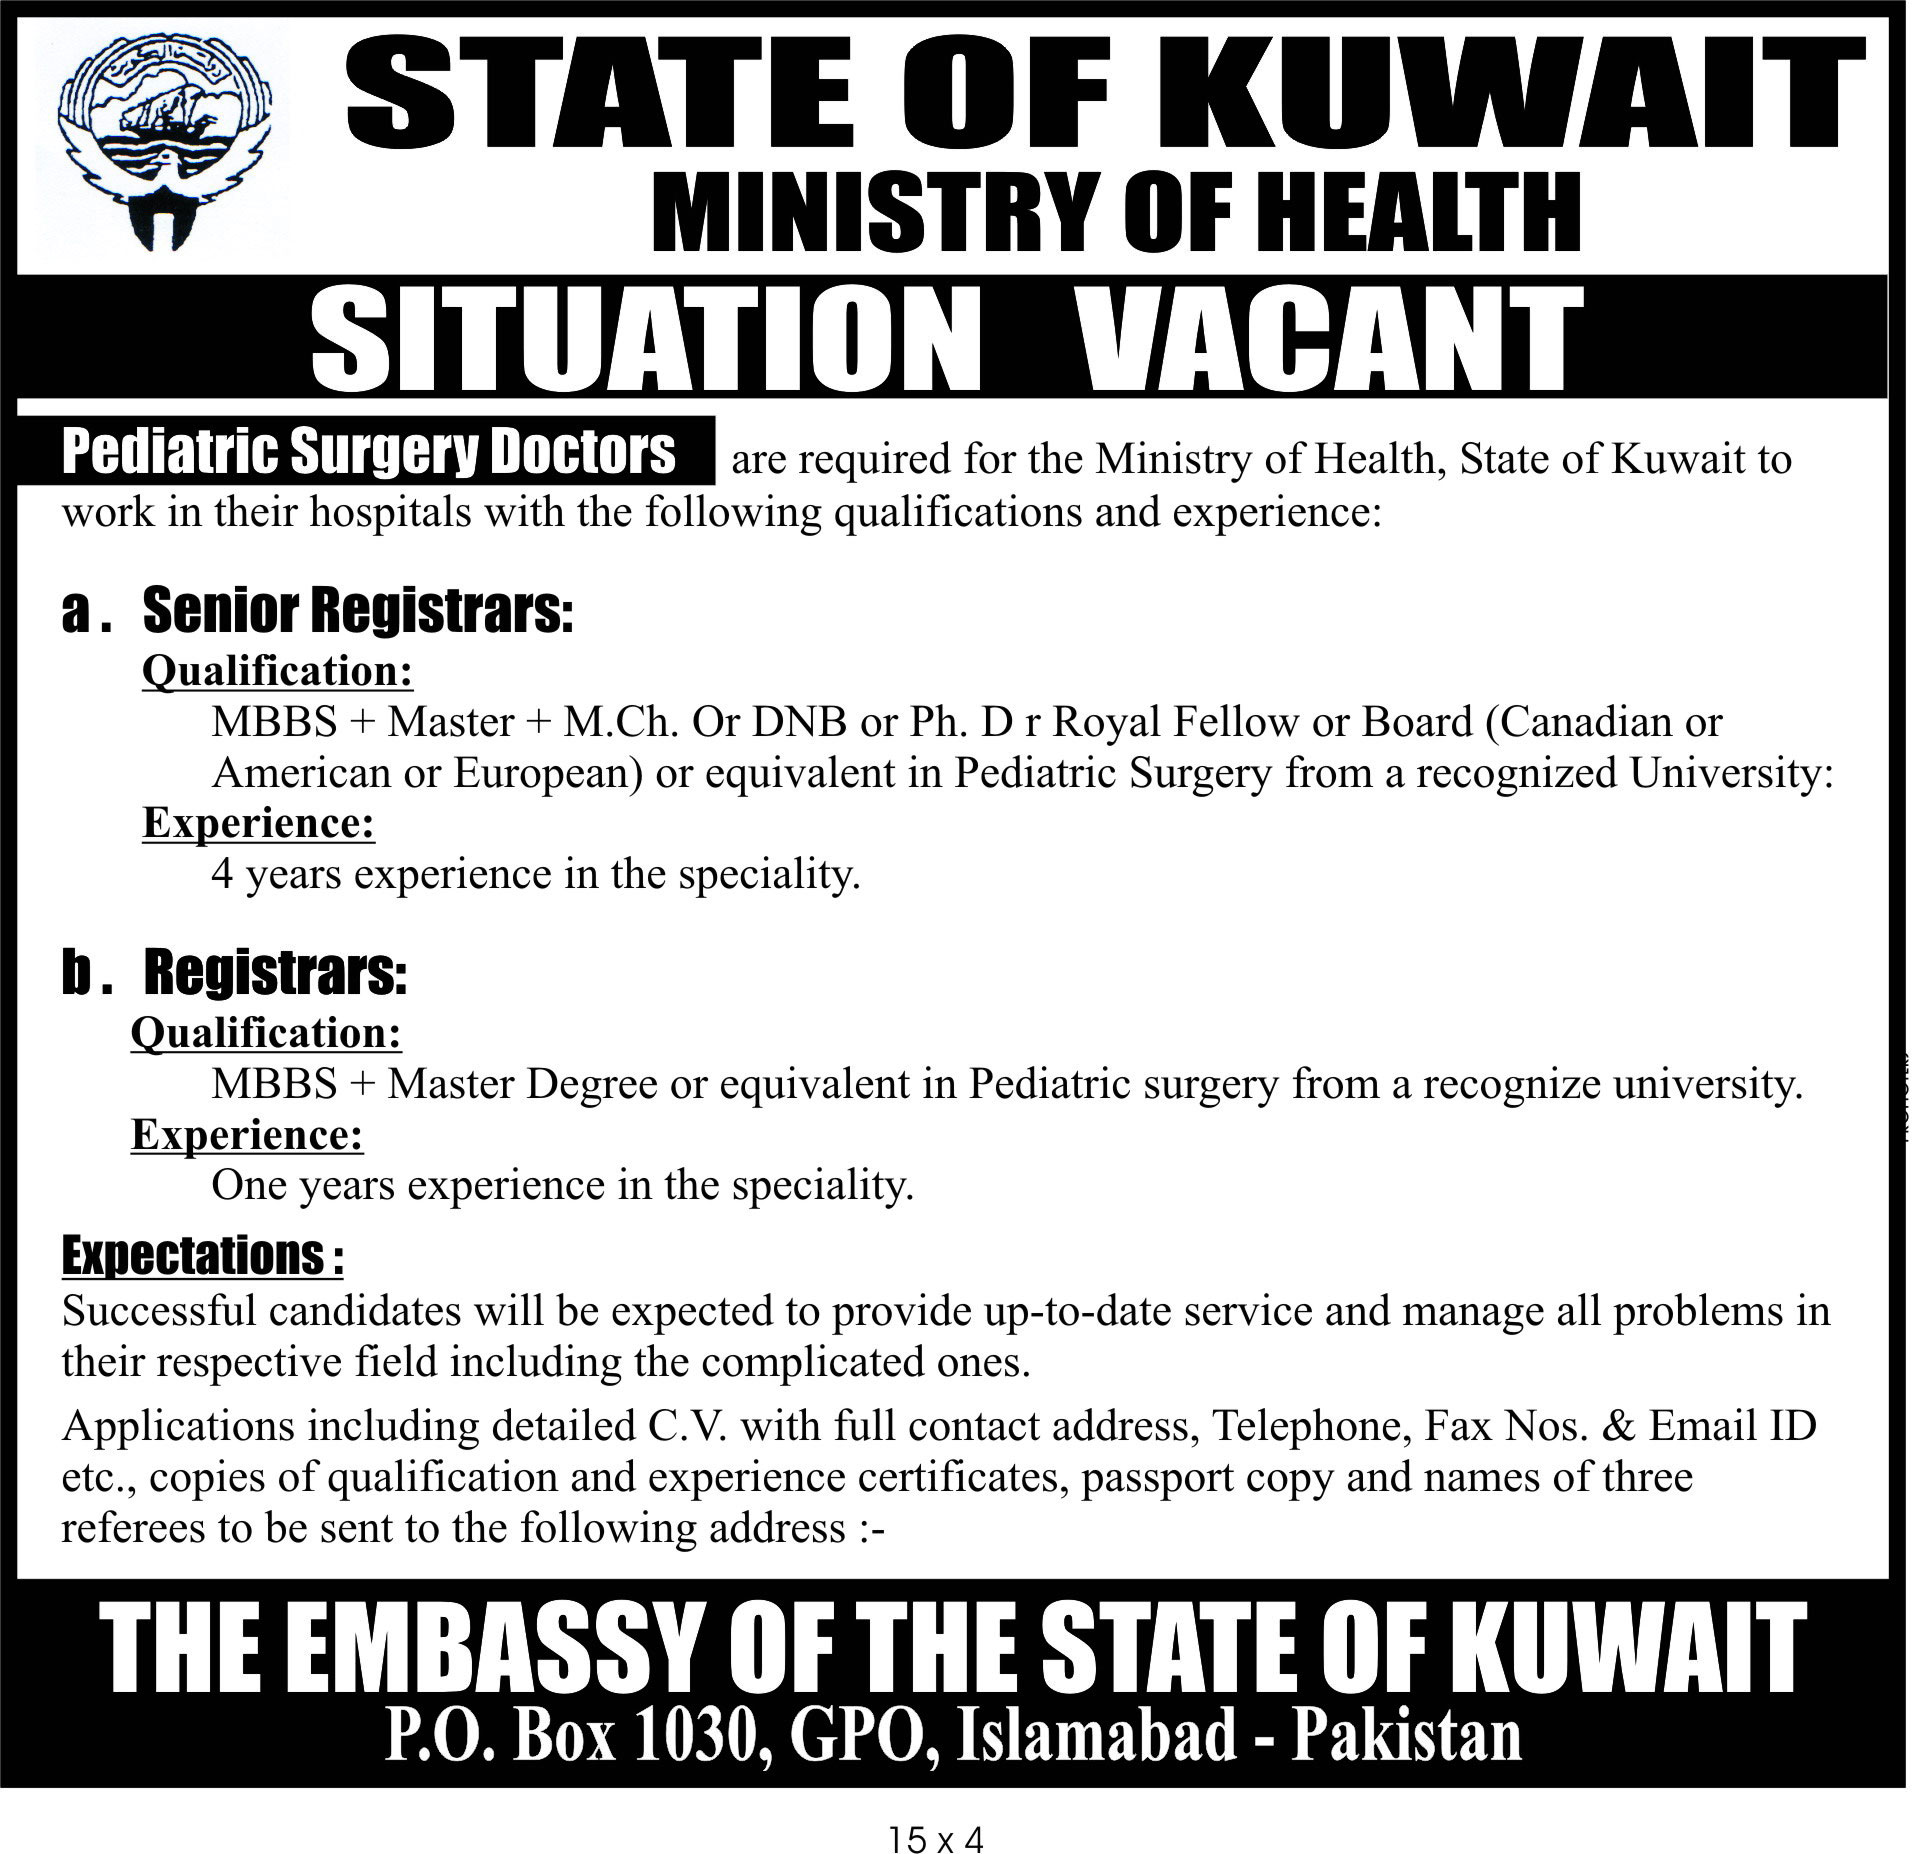 Pediatric Surgery Doctors for Ministry of Health Kuwait